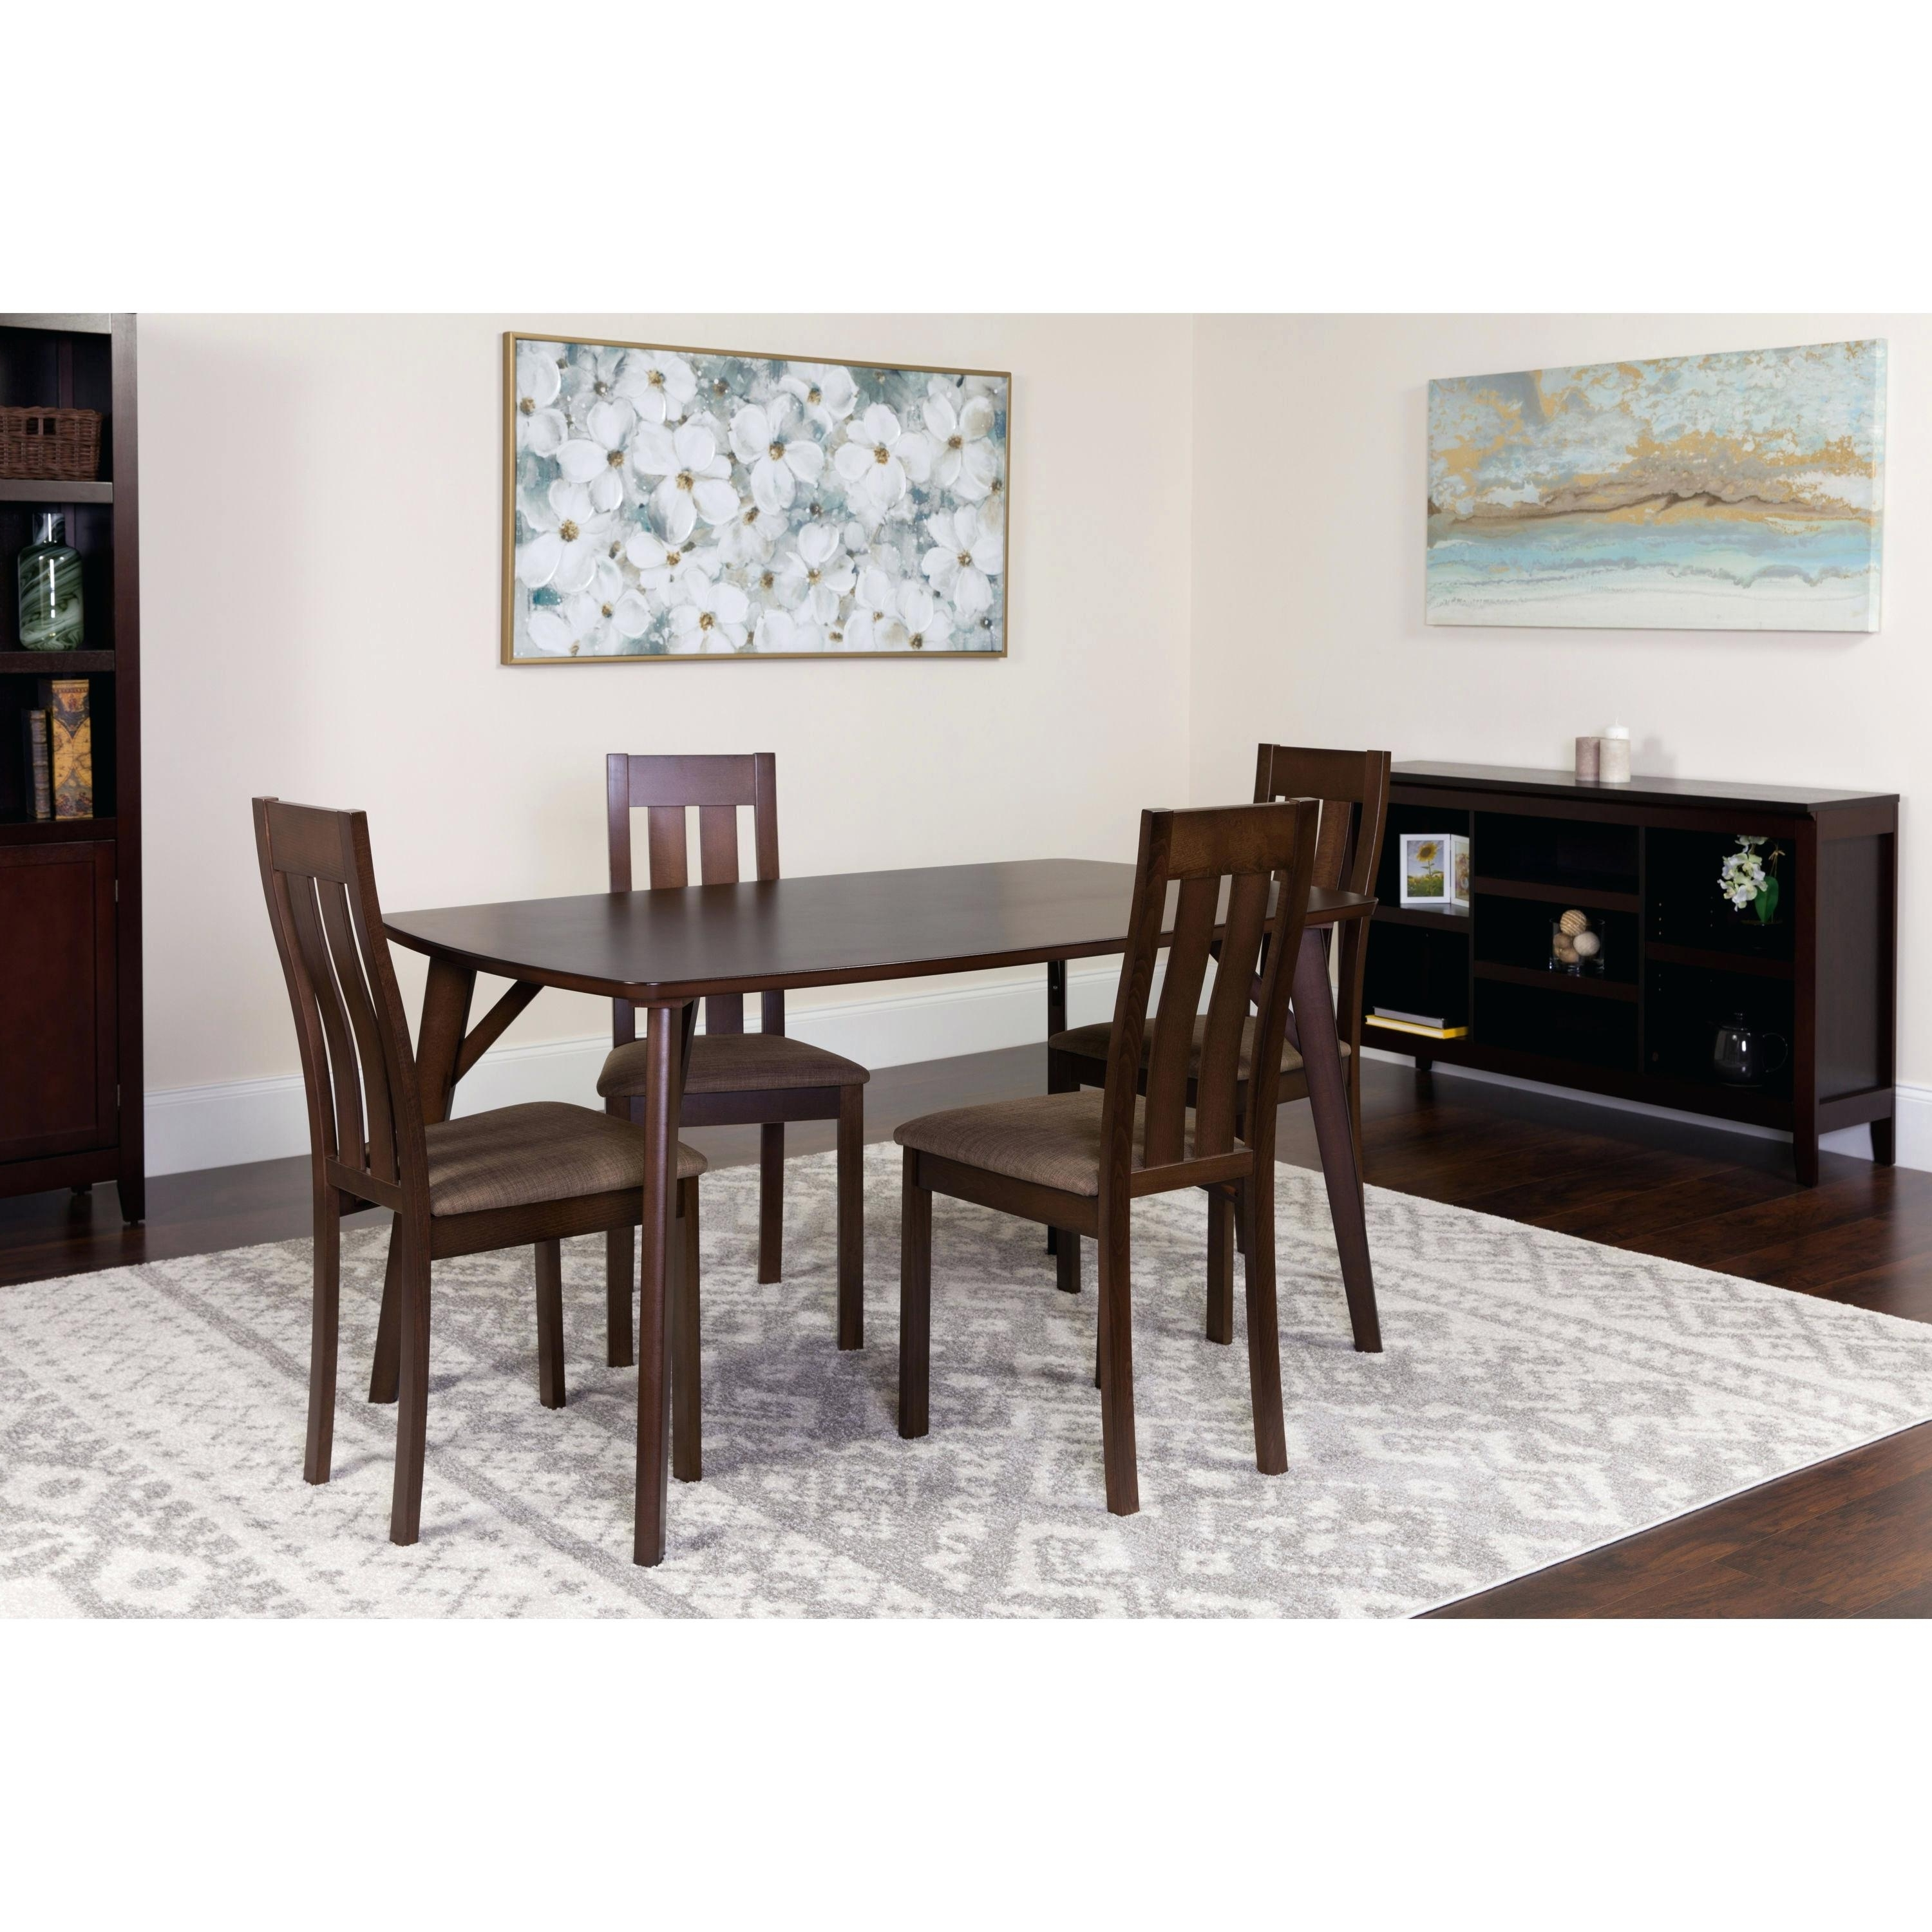 Caira Black Round Dining Tables Pertaining To Best And Newest 5 Piece Espresso Dining Set Our 5 Piece Espresso Wood Dining Table (View 17 of 25)